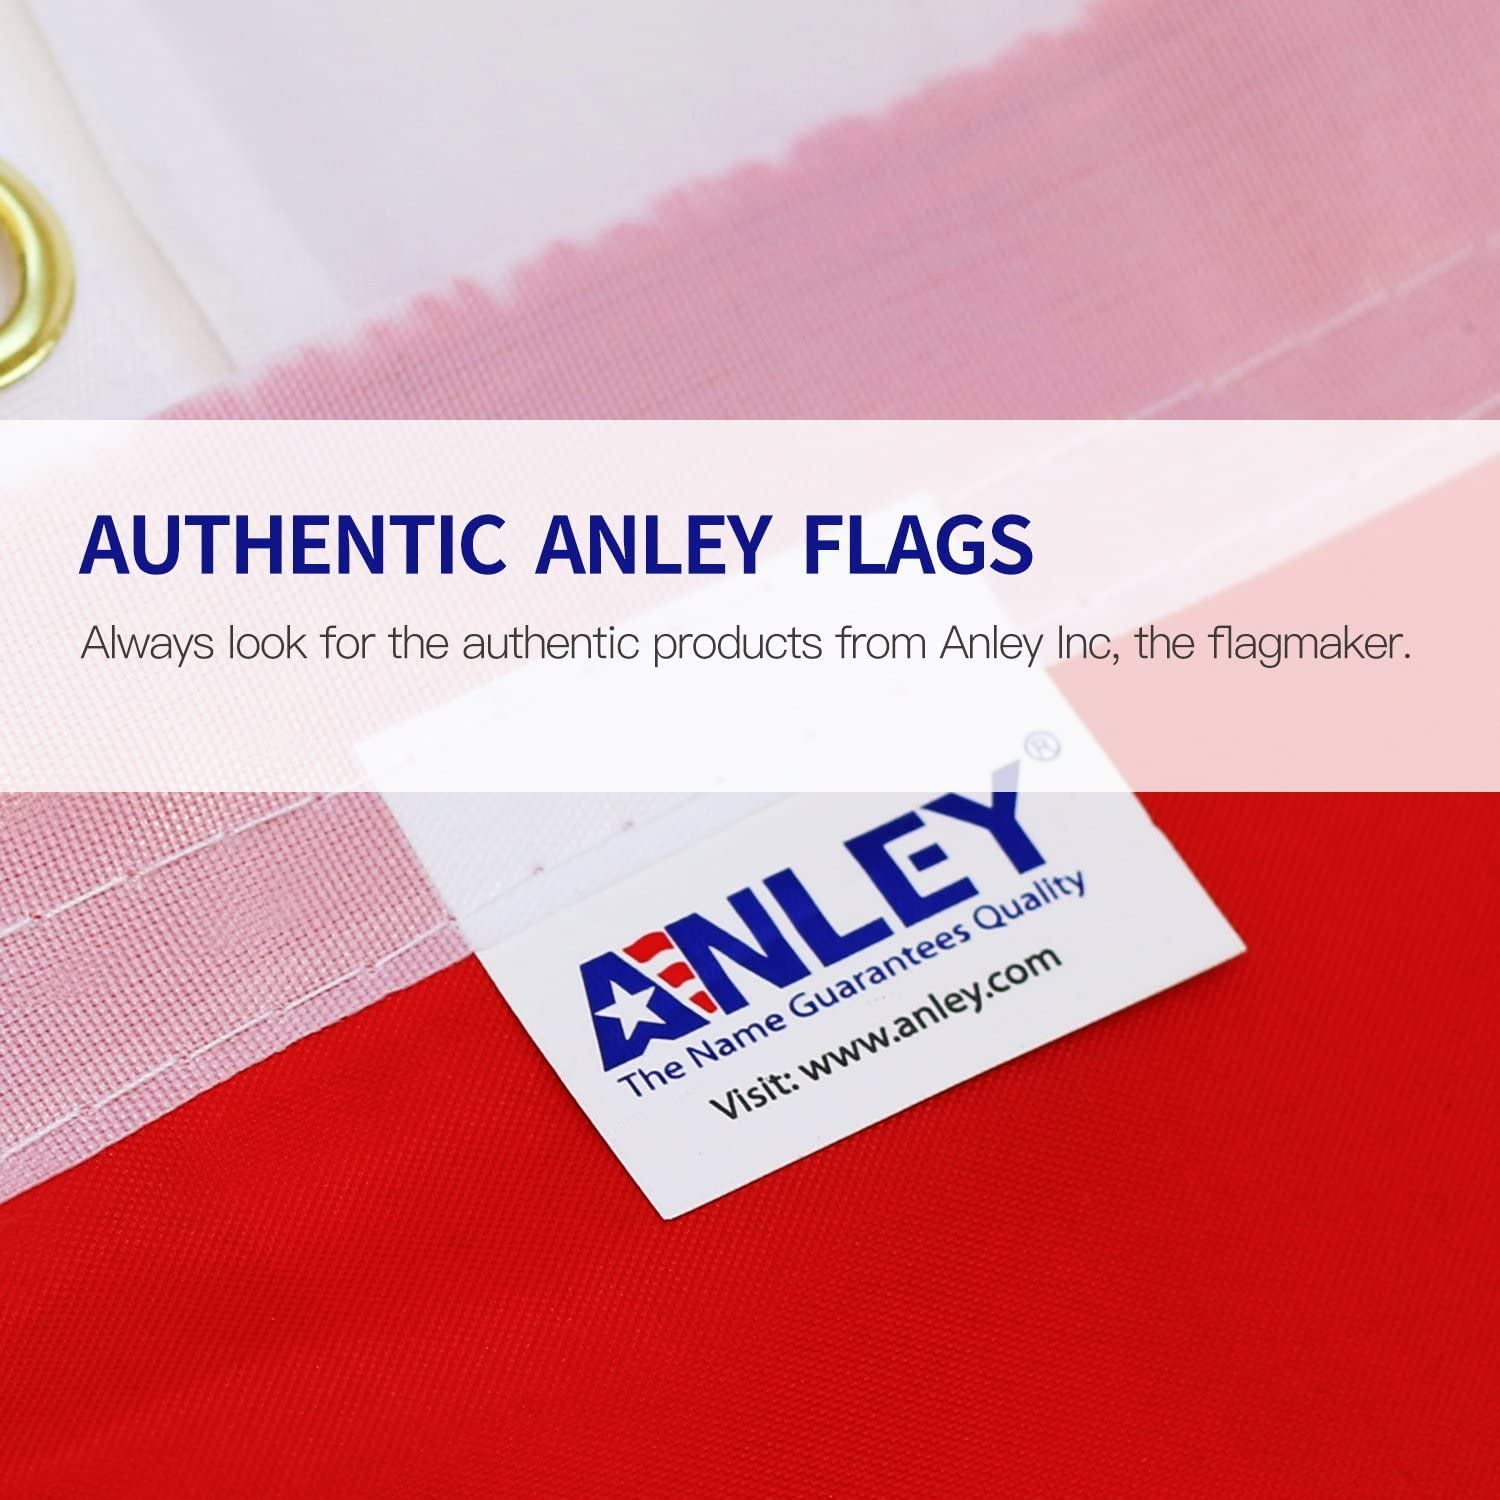 Anley Fly Breeze 3x5 Foot Donald Trump 2020 Flag - Vivid Color and Fade Proof - Canvas Header and Double Stitched - NO More Bullshit Flags Polyester with Brass Grommets 3 X 5 Ft : Garden & Outdoor